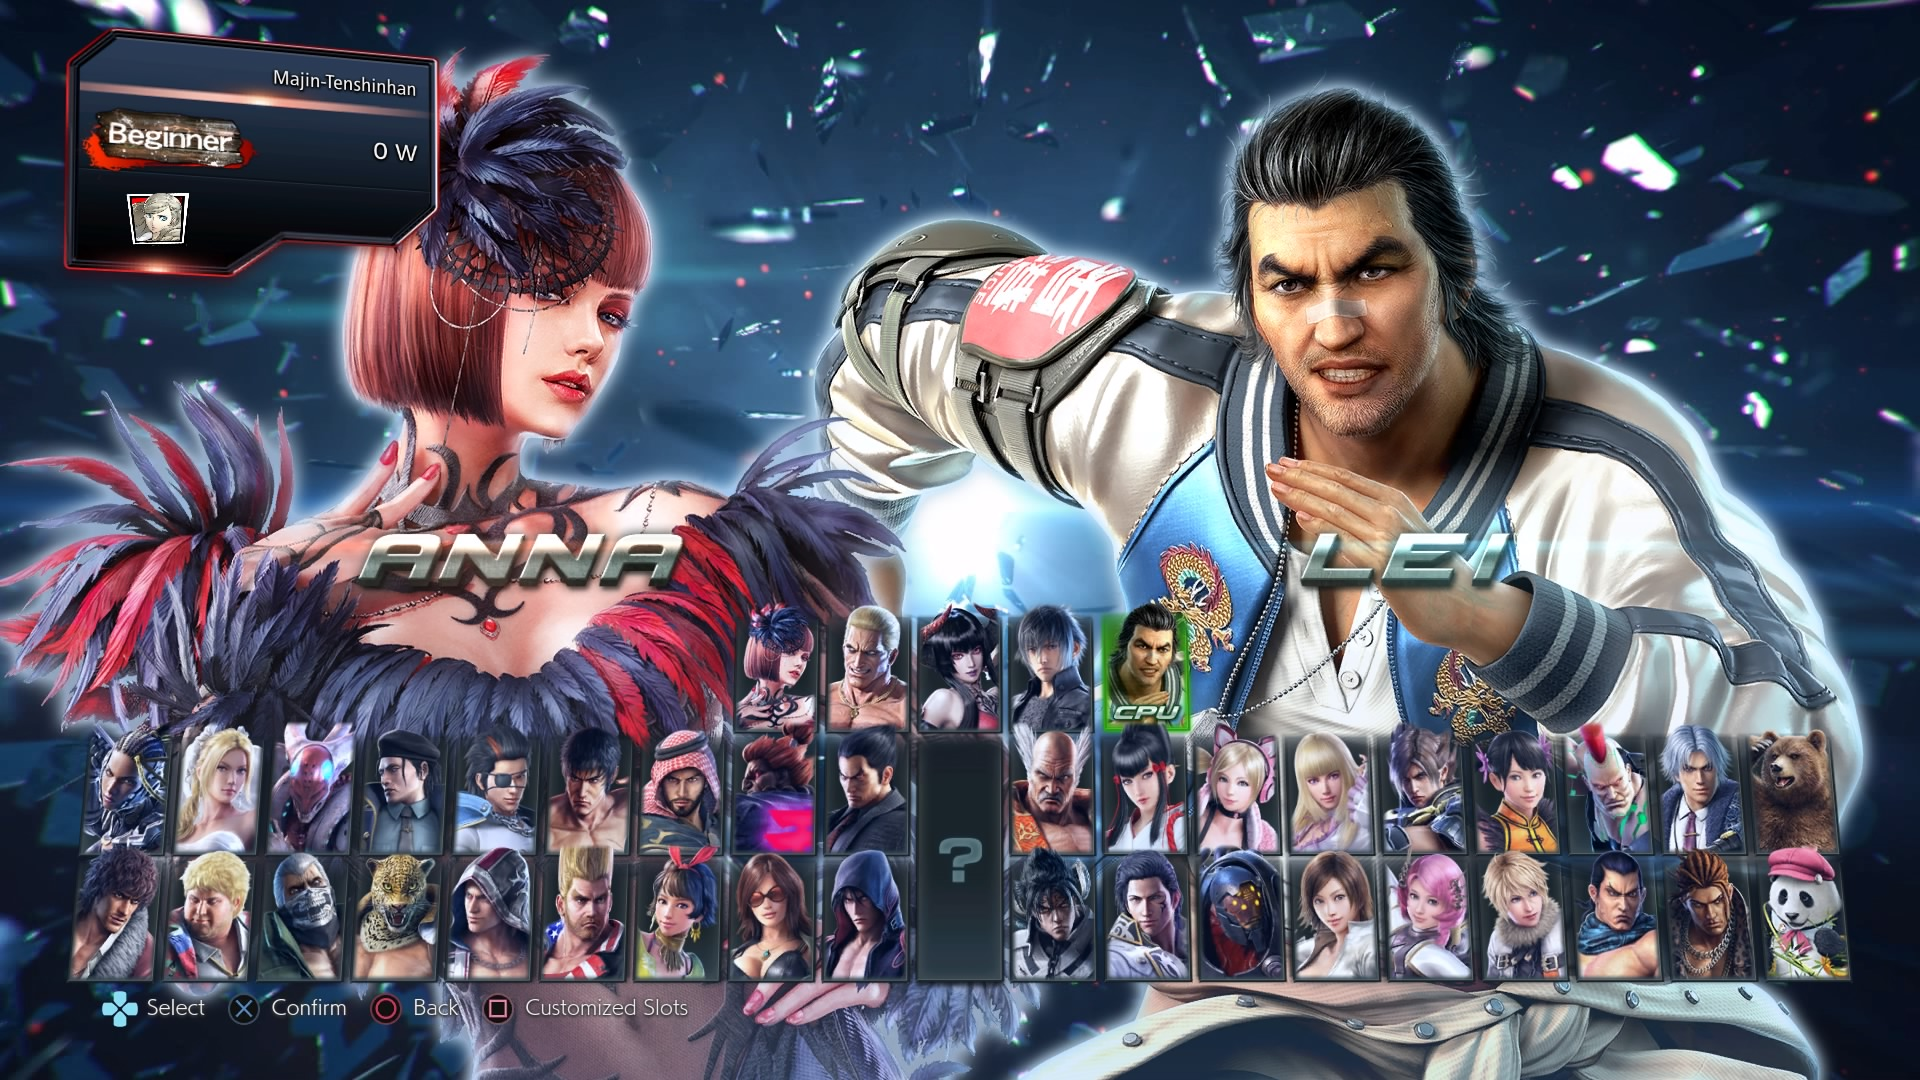 Tekken 7's Season 2 changes to its online ranking system and UI make